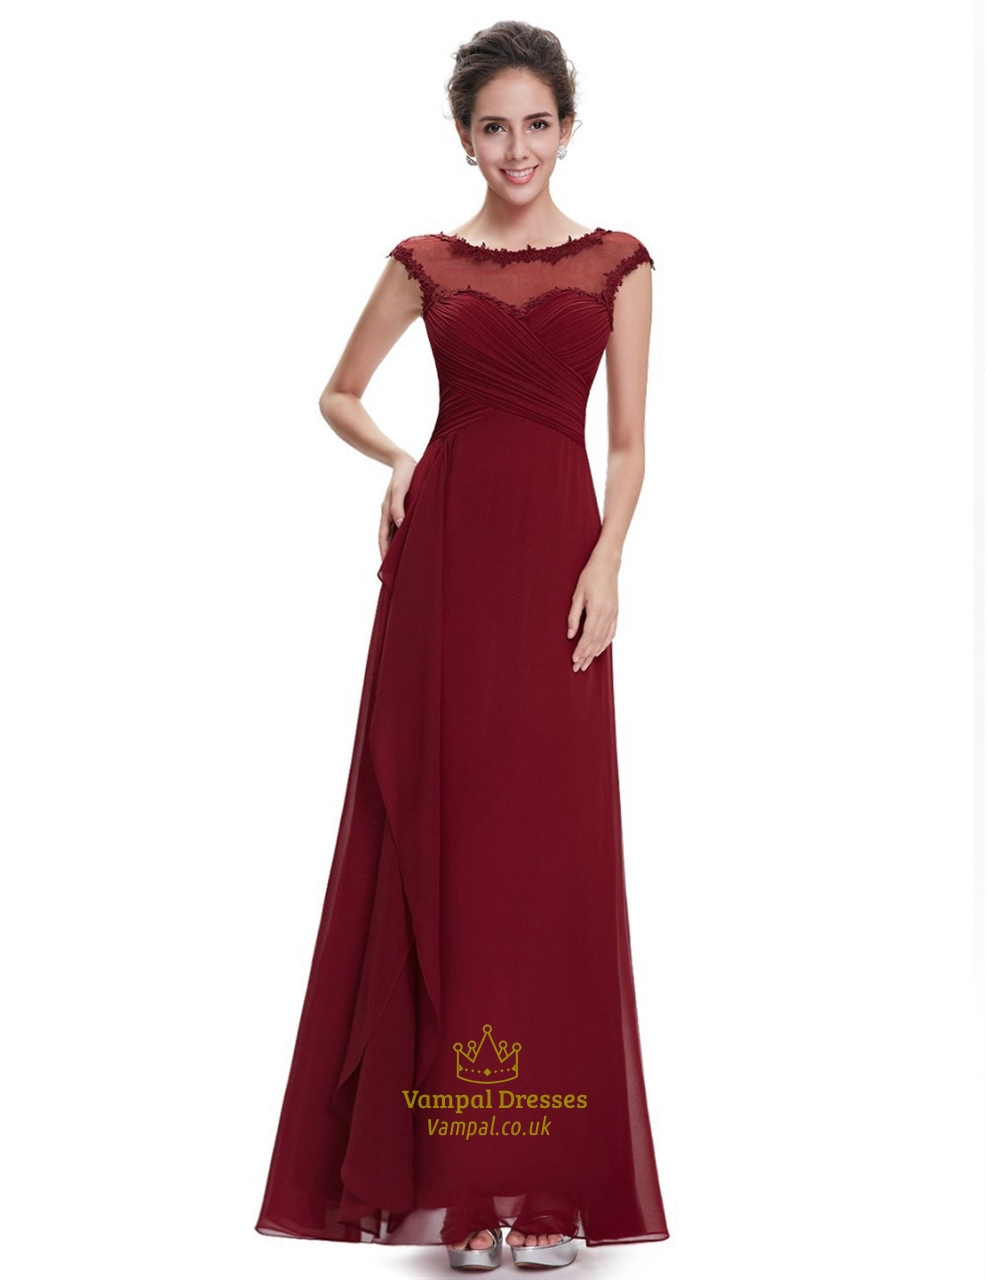 Burgundy Chiffon Cap Sleeves Bridesmaid Dresses With Lace Applique | Vampal Dresses